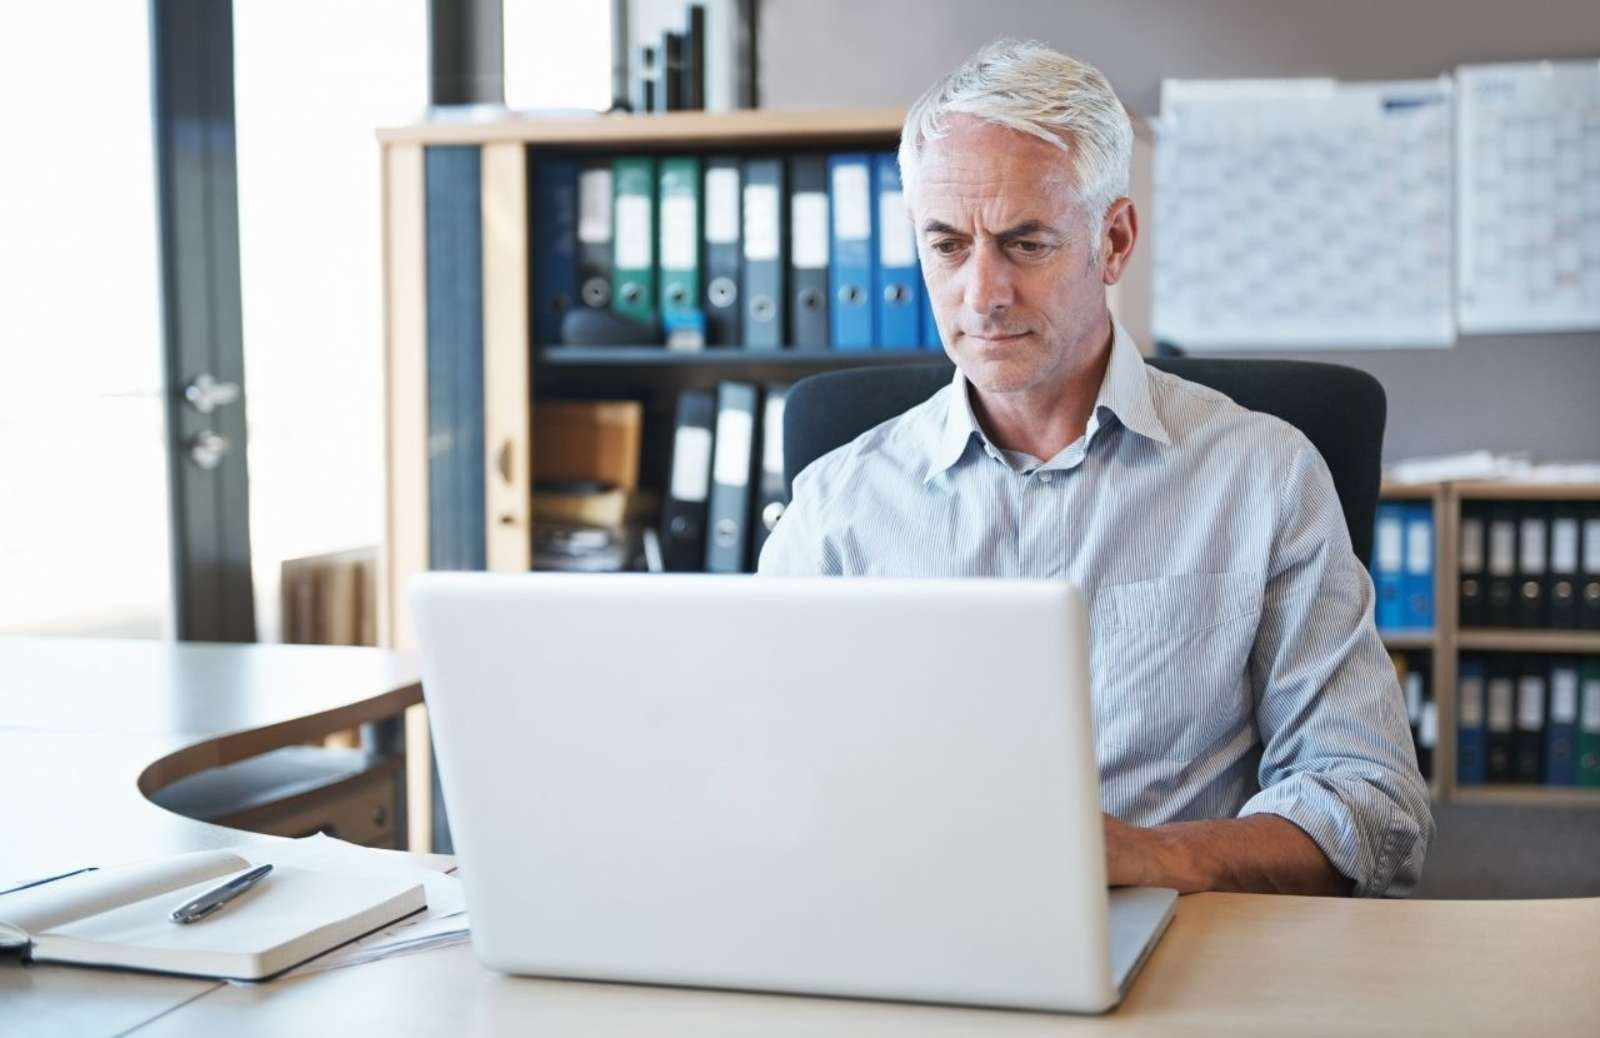 Gray-haired man sitting at desk working on a laptop computer